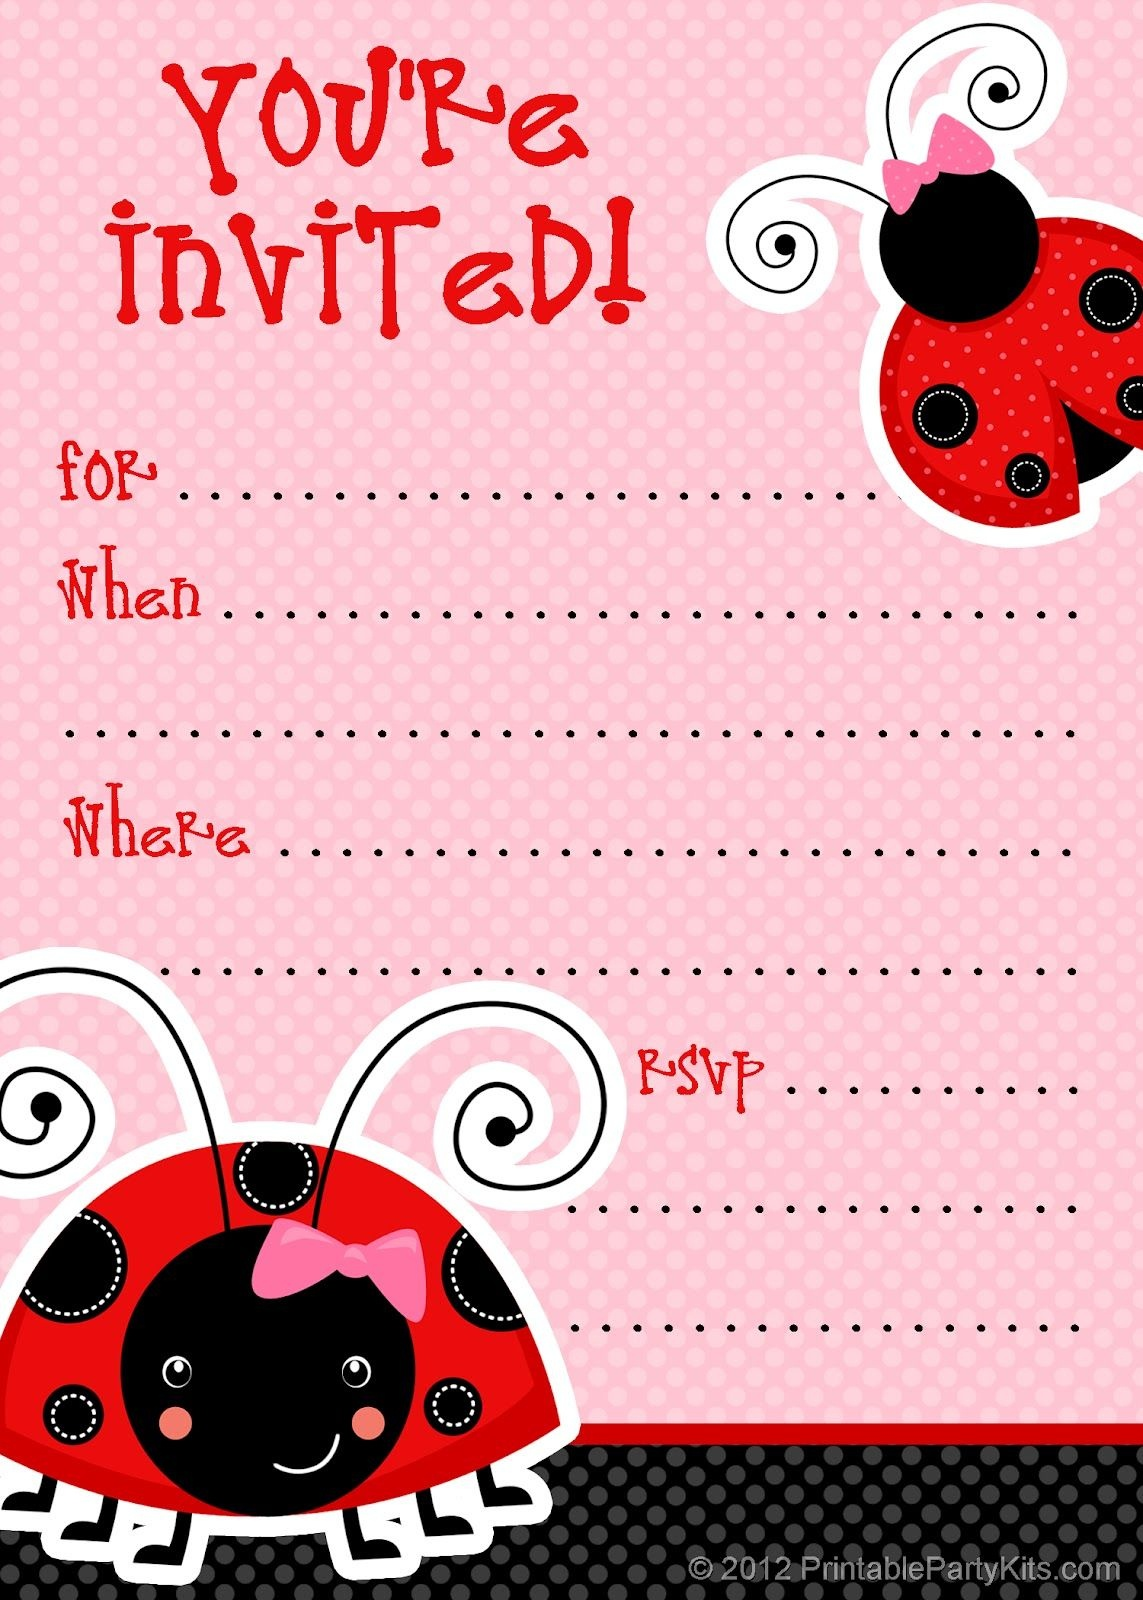 Free Ladybug Party Invitations From Printablepartyinvitations - Free Printable Ladybug Invitations